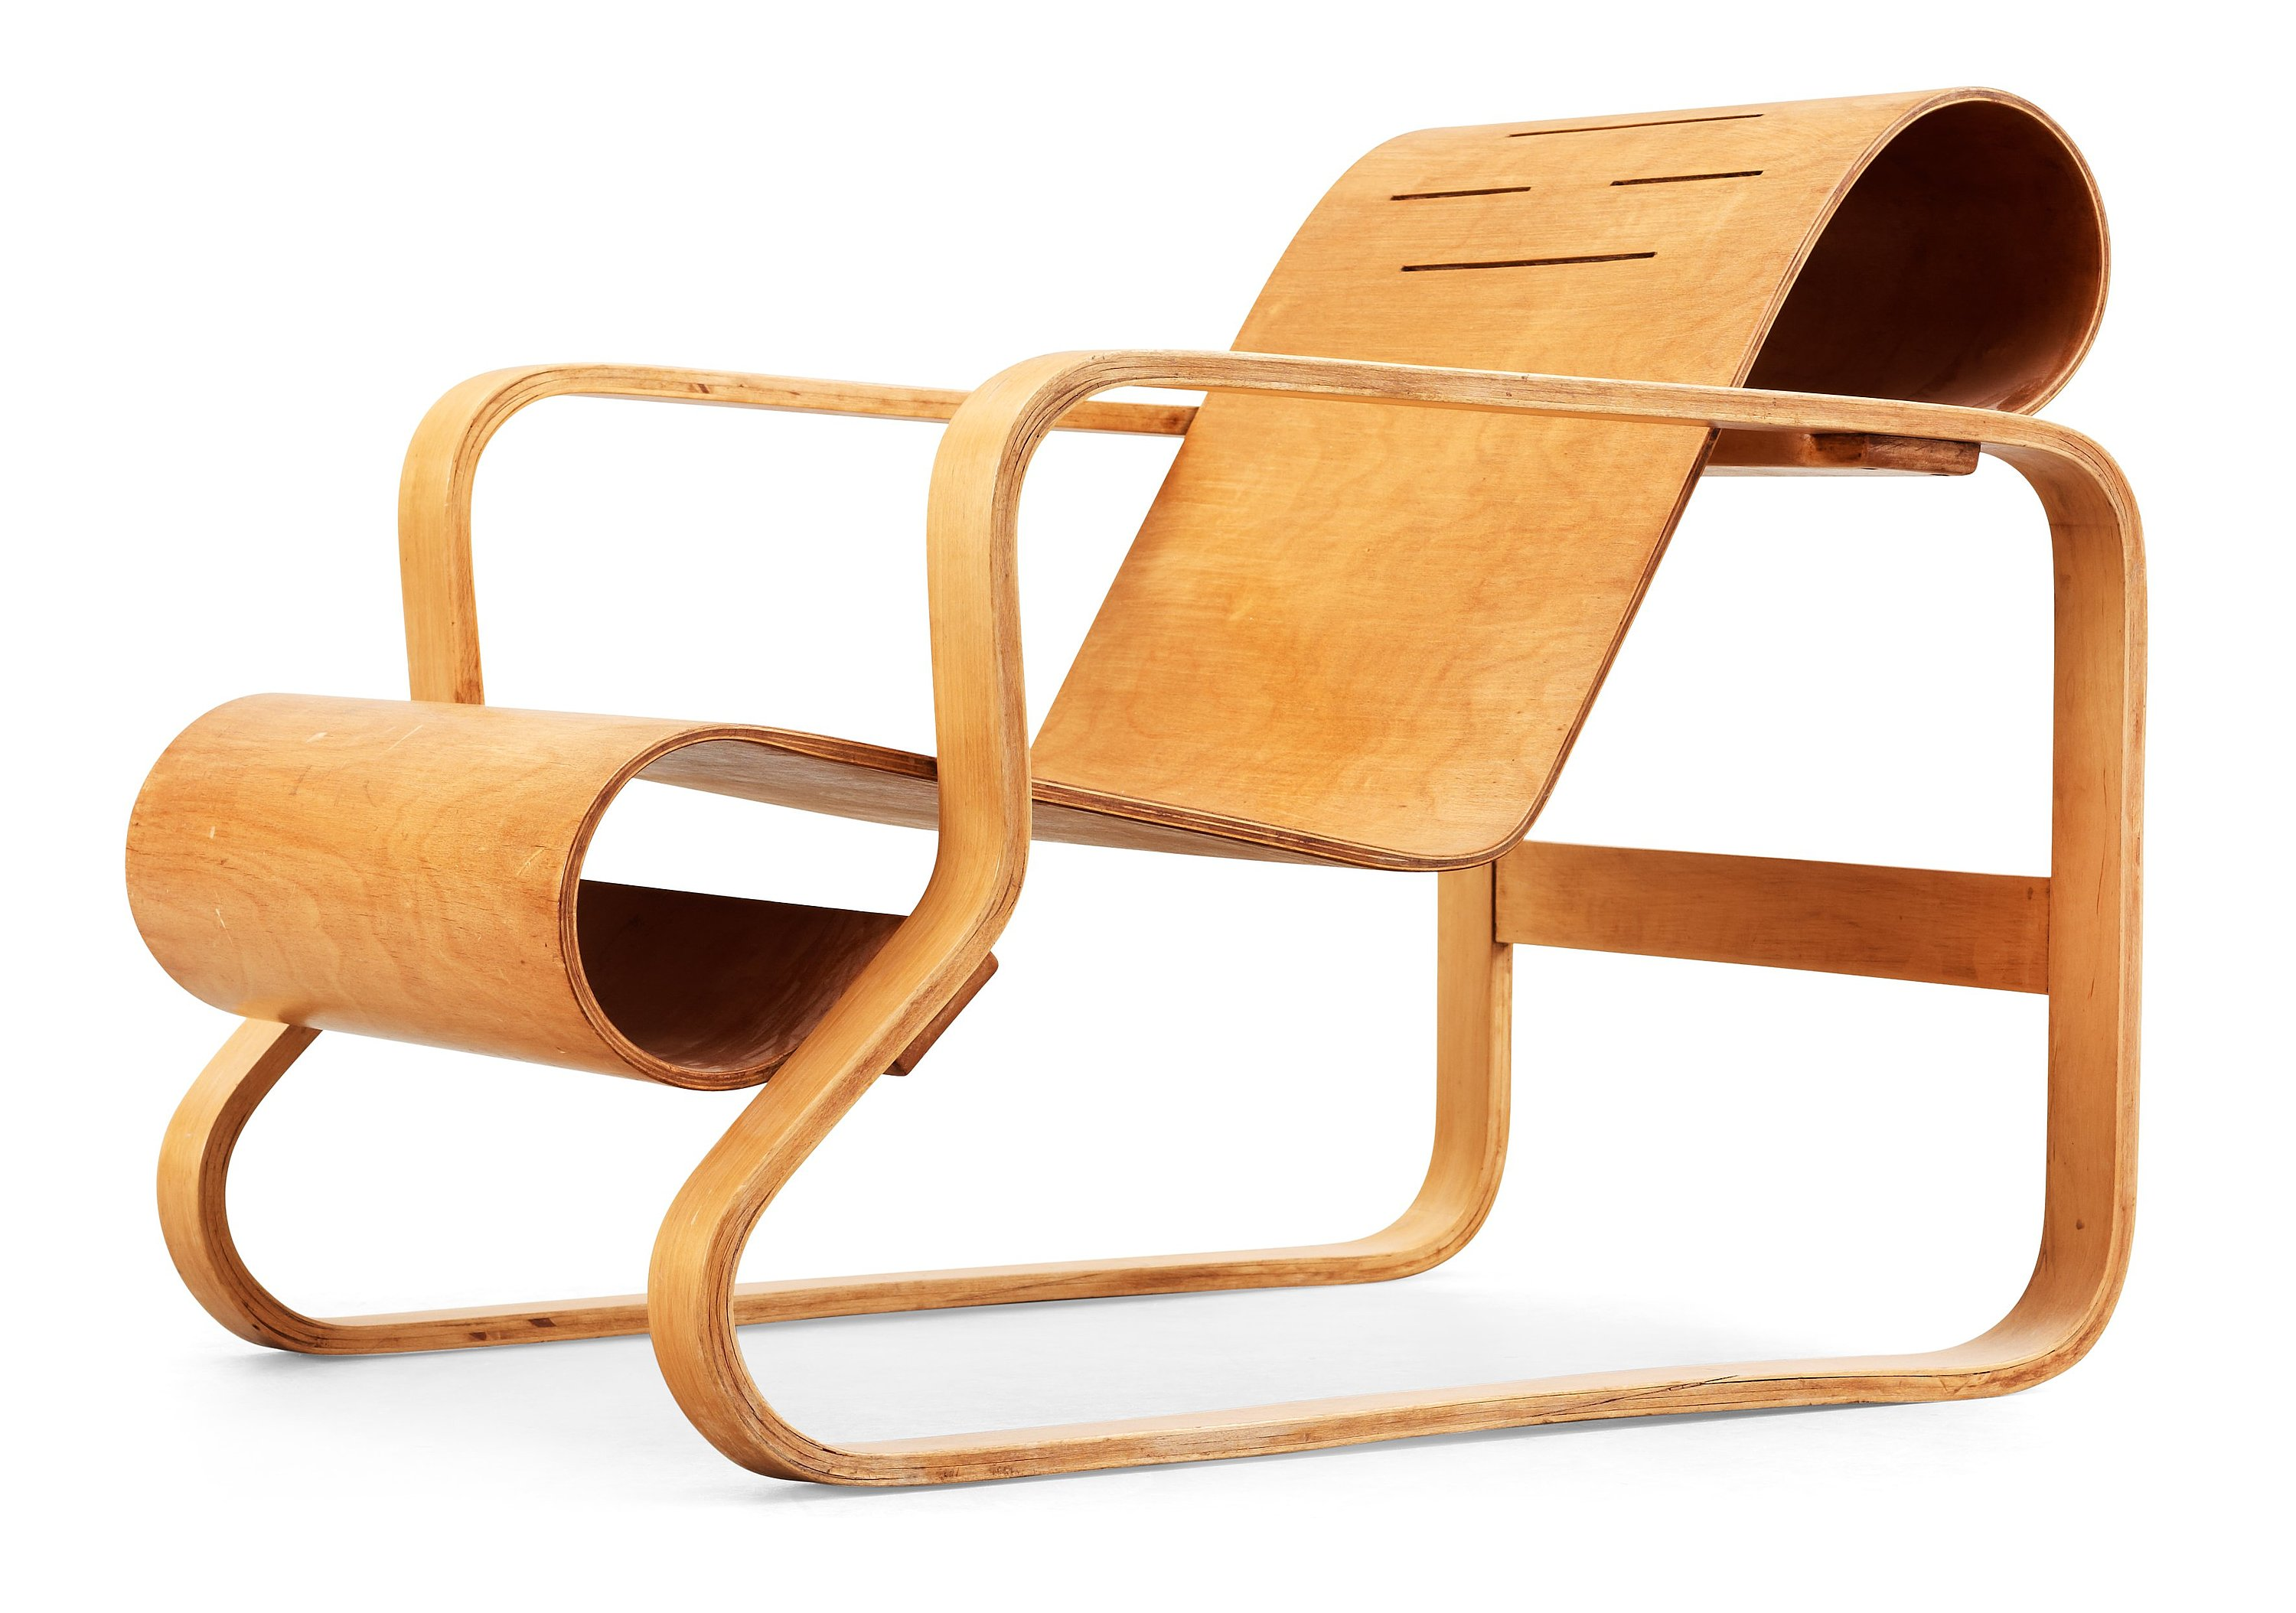 An Alvar Aalto laminated birch and plywood armchair, 'Paimio', model 41, retailed by Finmar Ltd, Finland circa 1932.